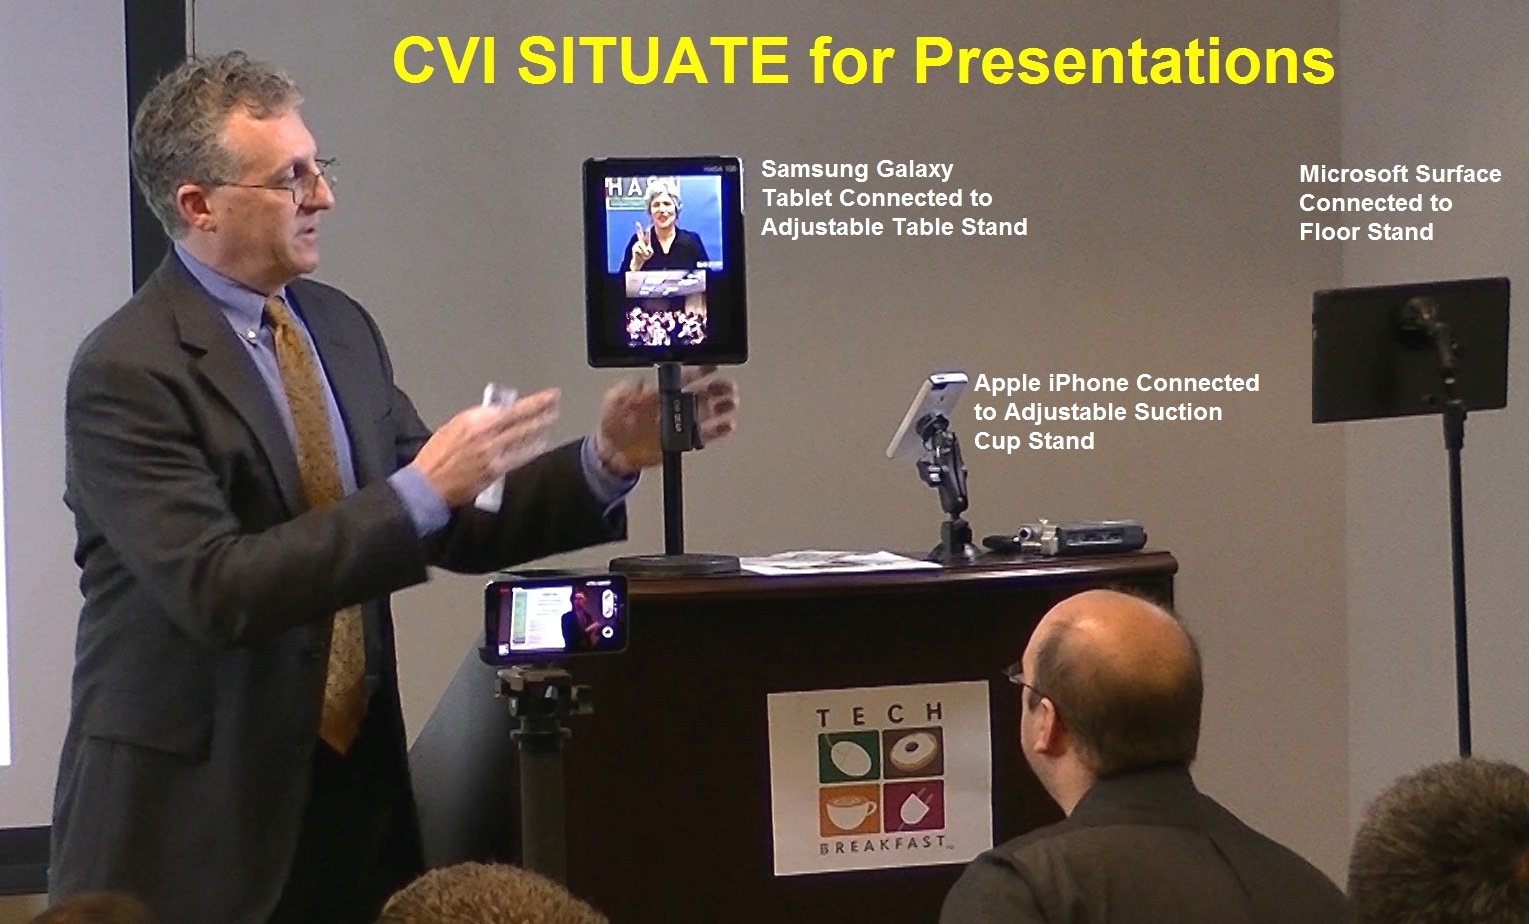 CVI SITUATE for Presentations; Presenter using stands for iPad, iPhone and Surface at the Tech Breakfast